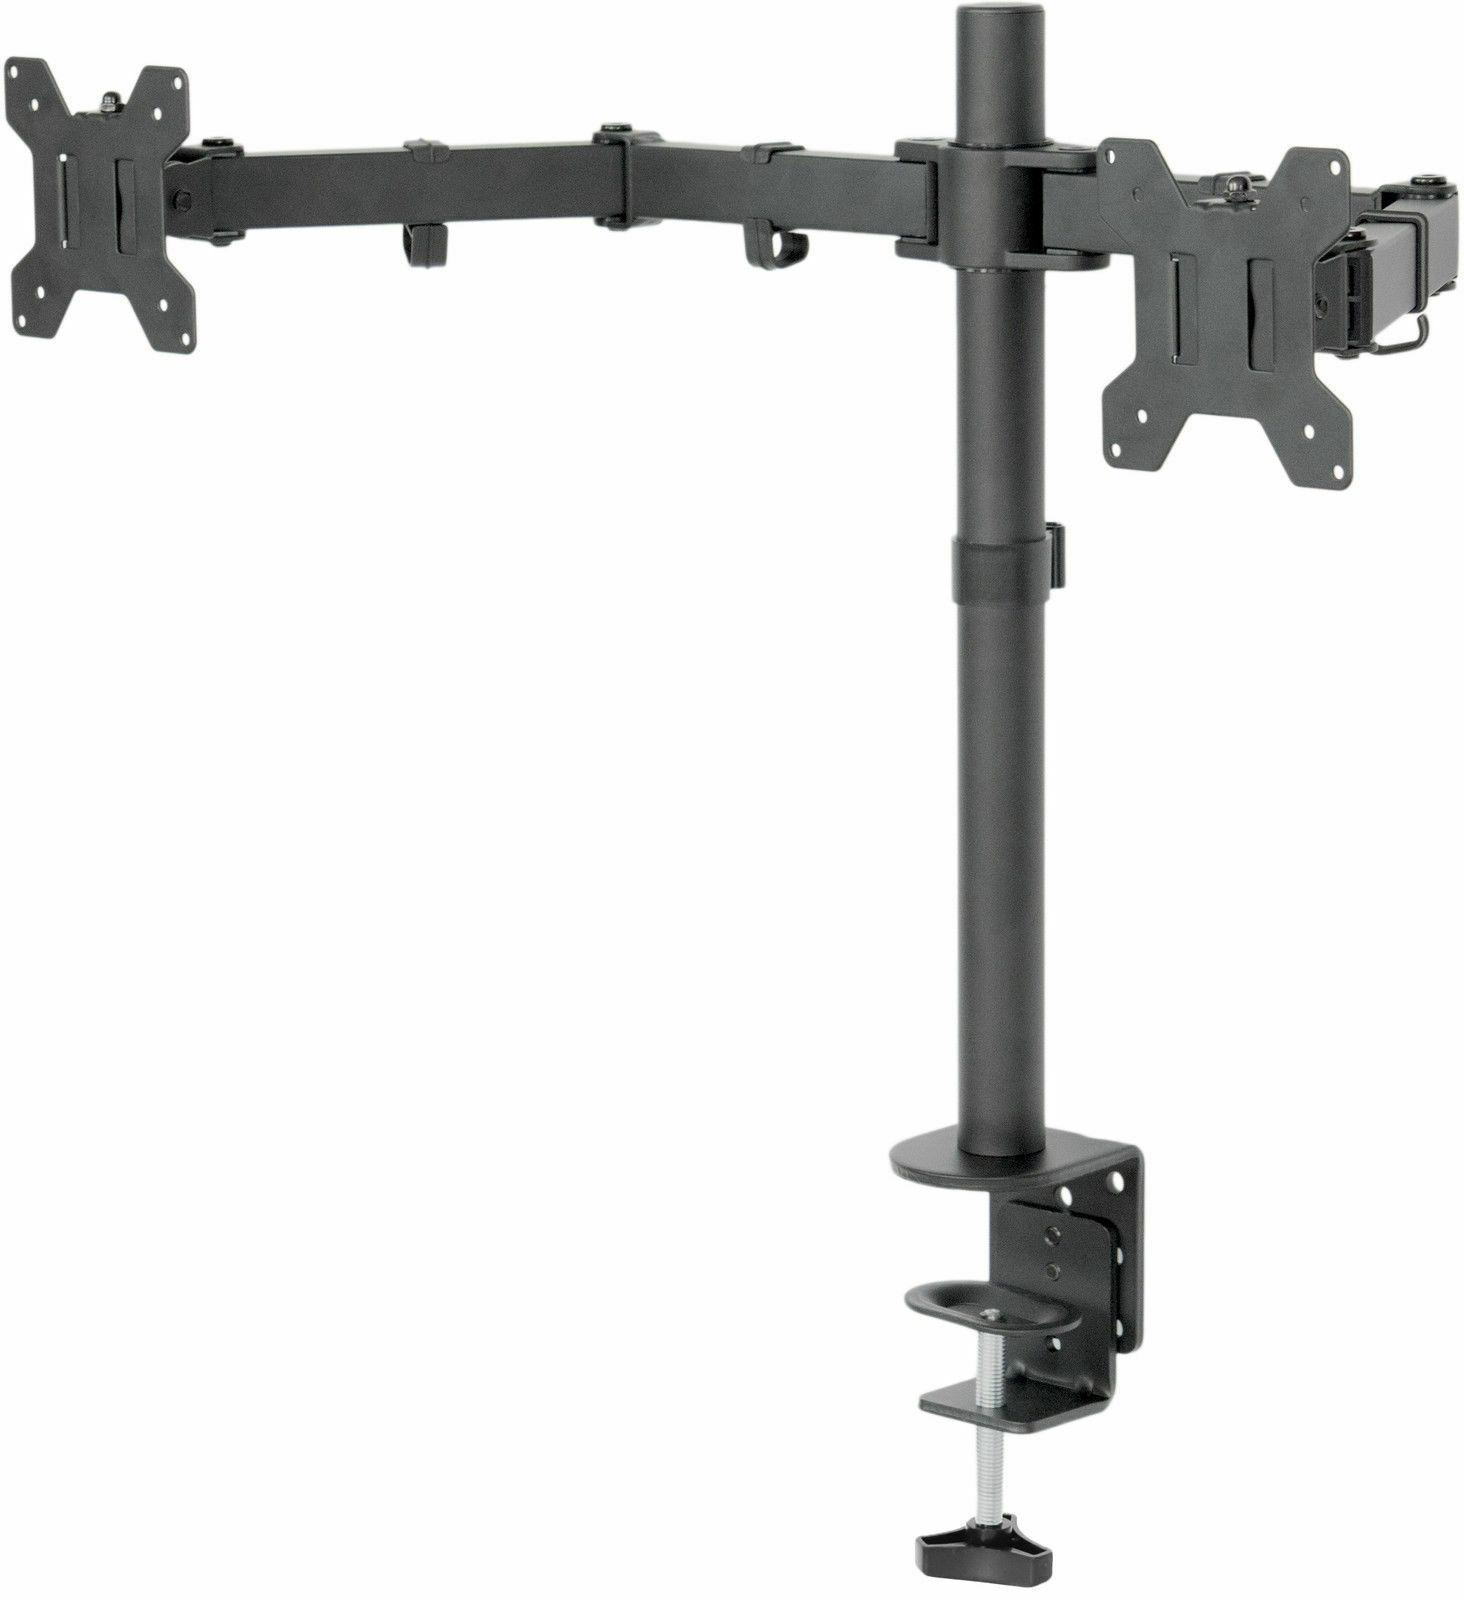 mount stand heavy duty fully adjustable screens